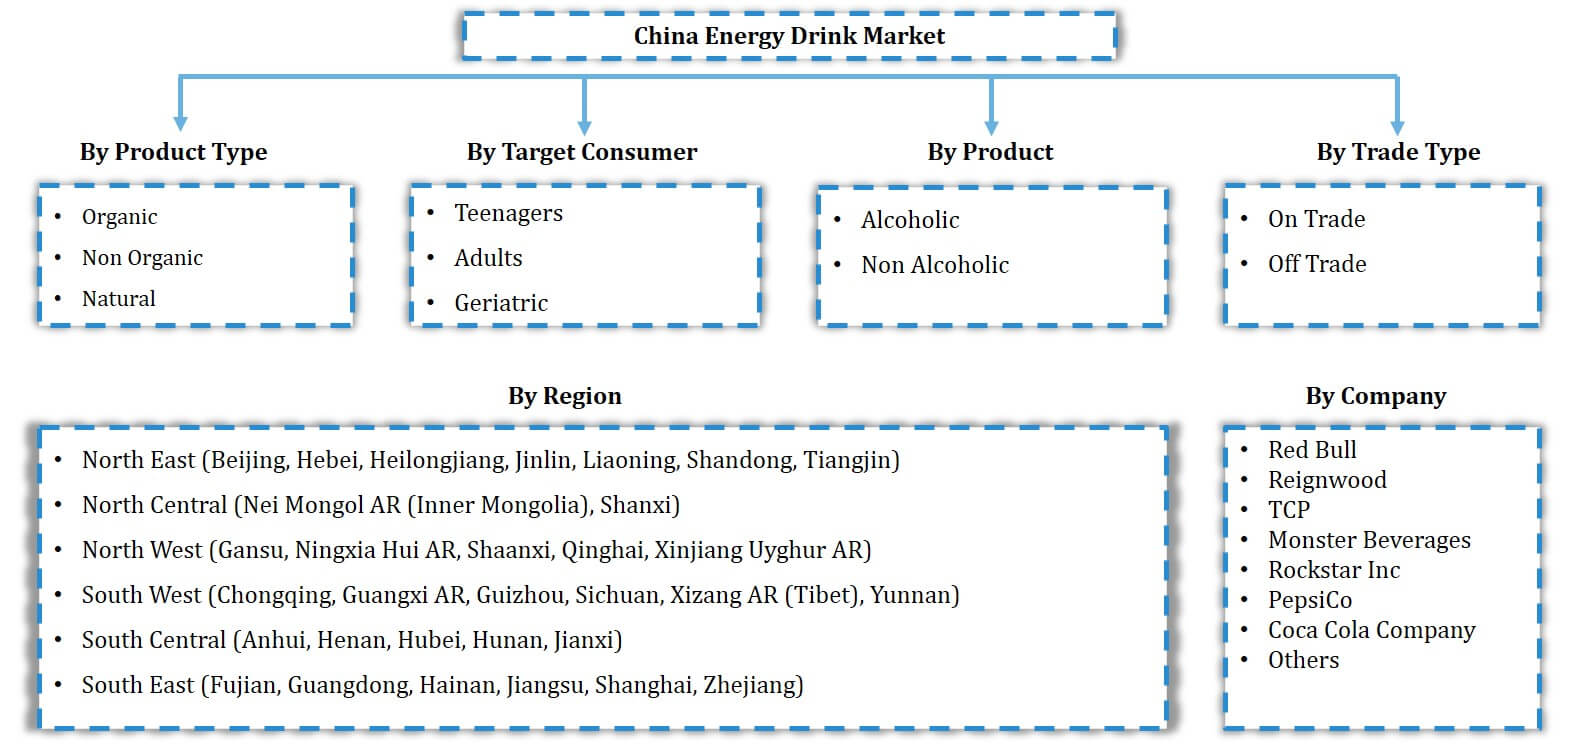 China Energy Drink Market Segmentation